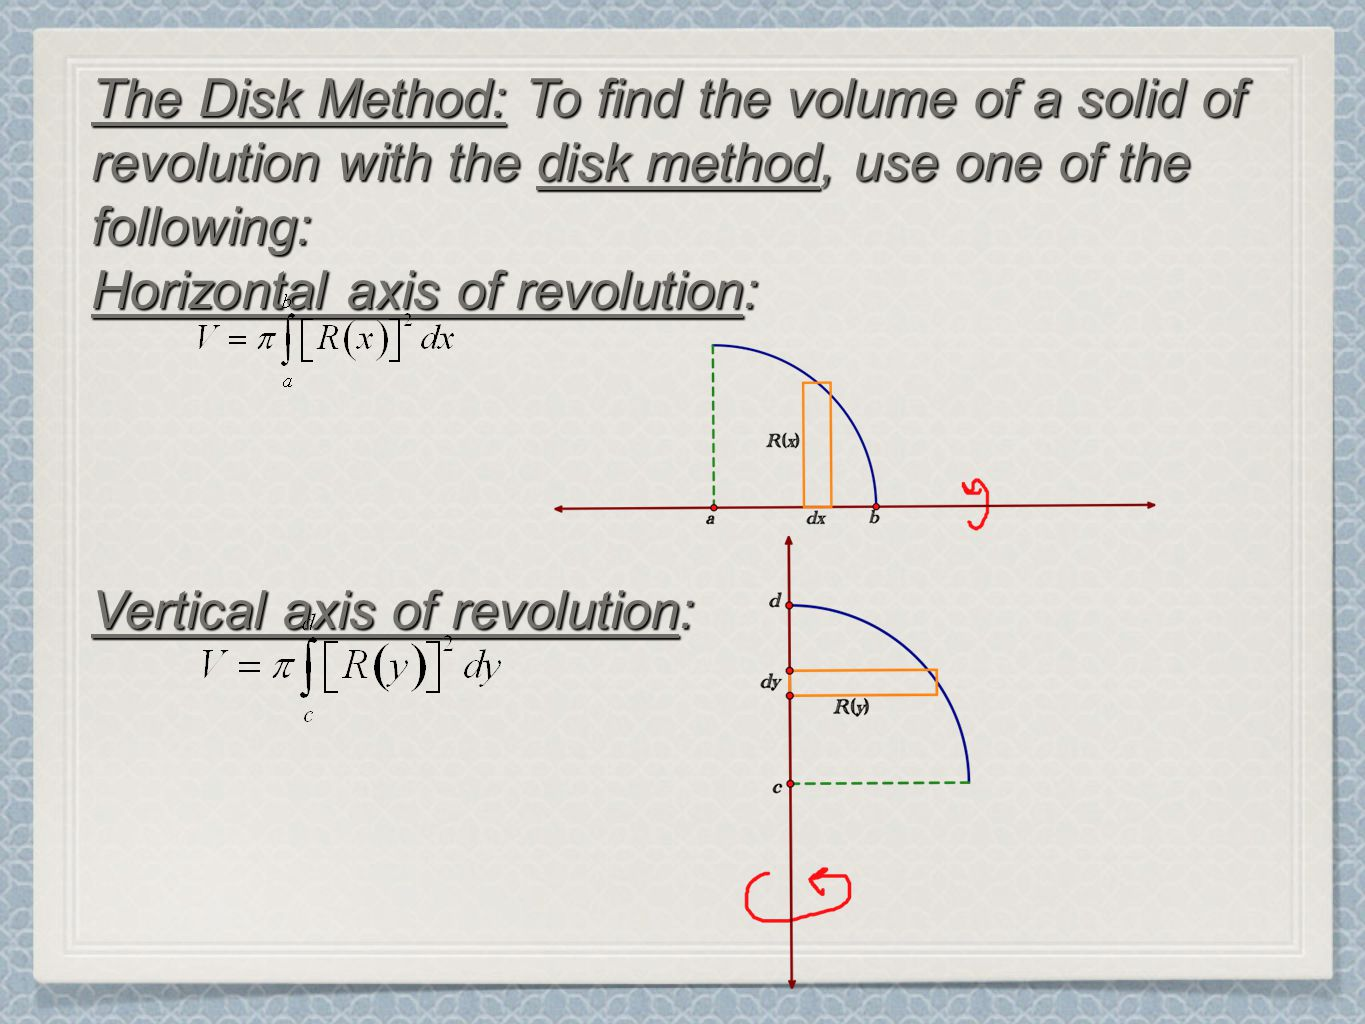 4 The Disk Method: To Find The Volume Of A Solid Of Revolution With The